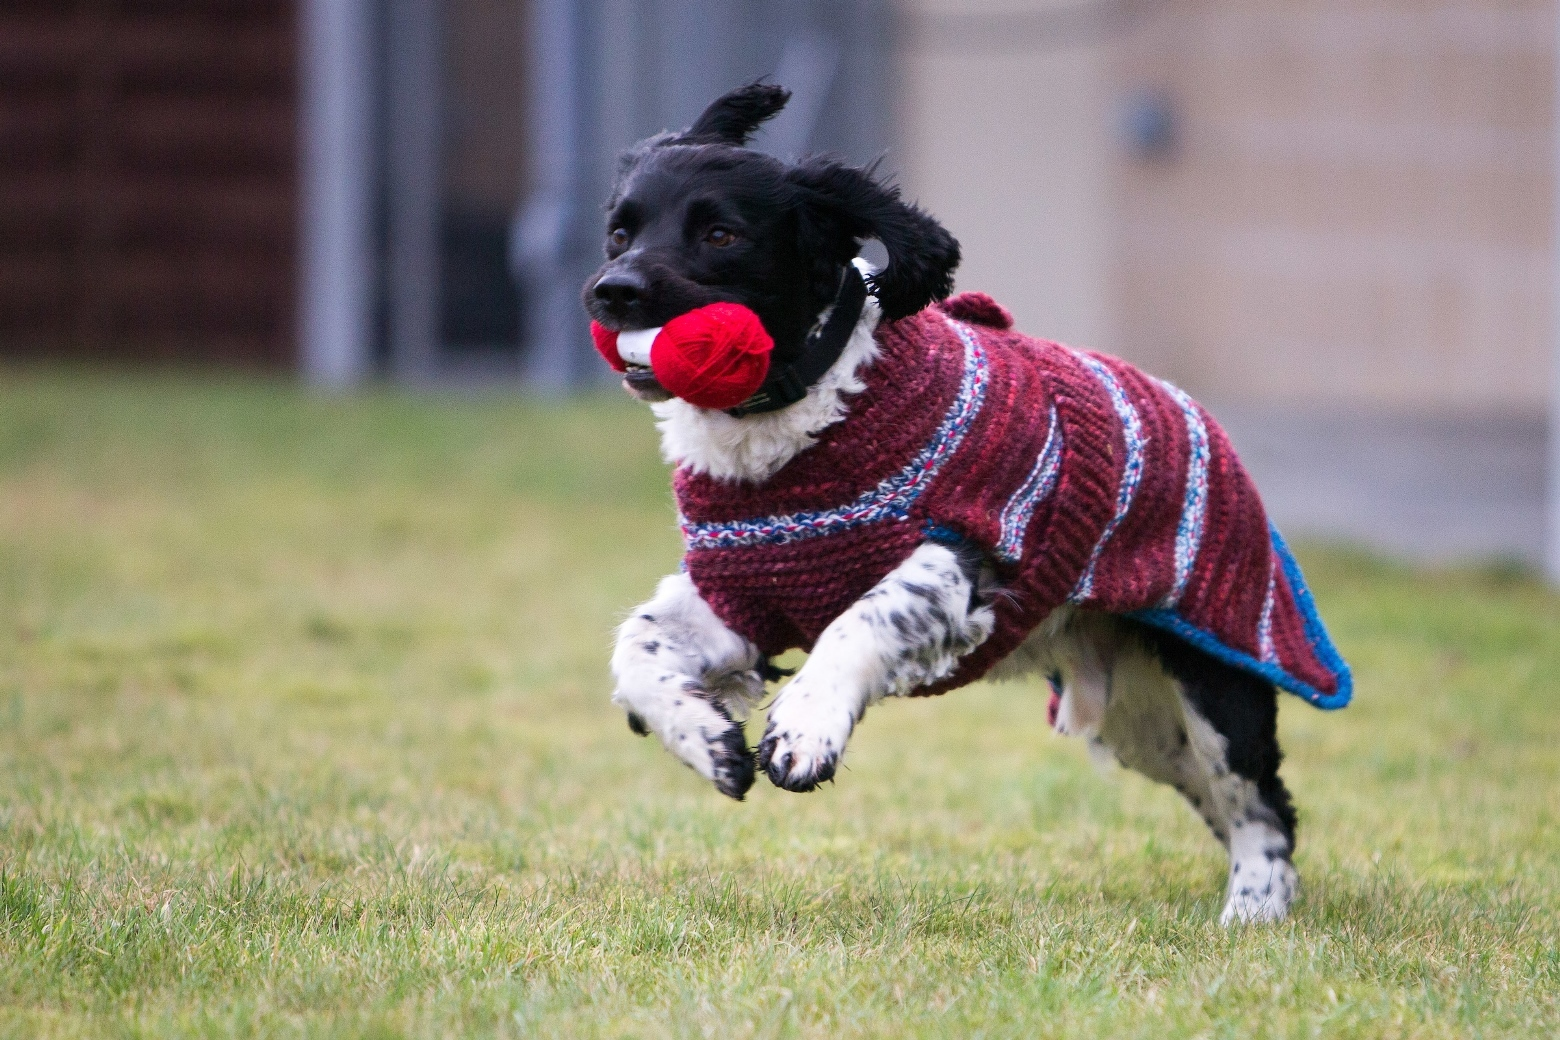 One of the rescue dogs with his new knitted coat.